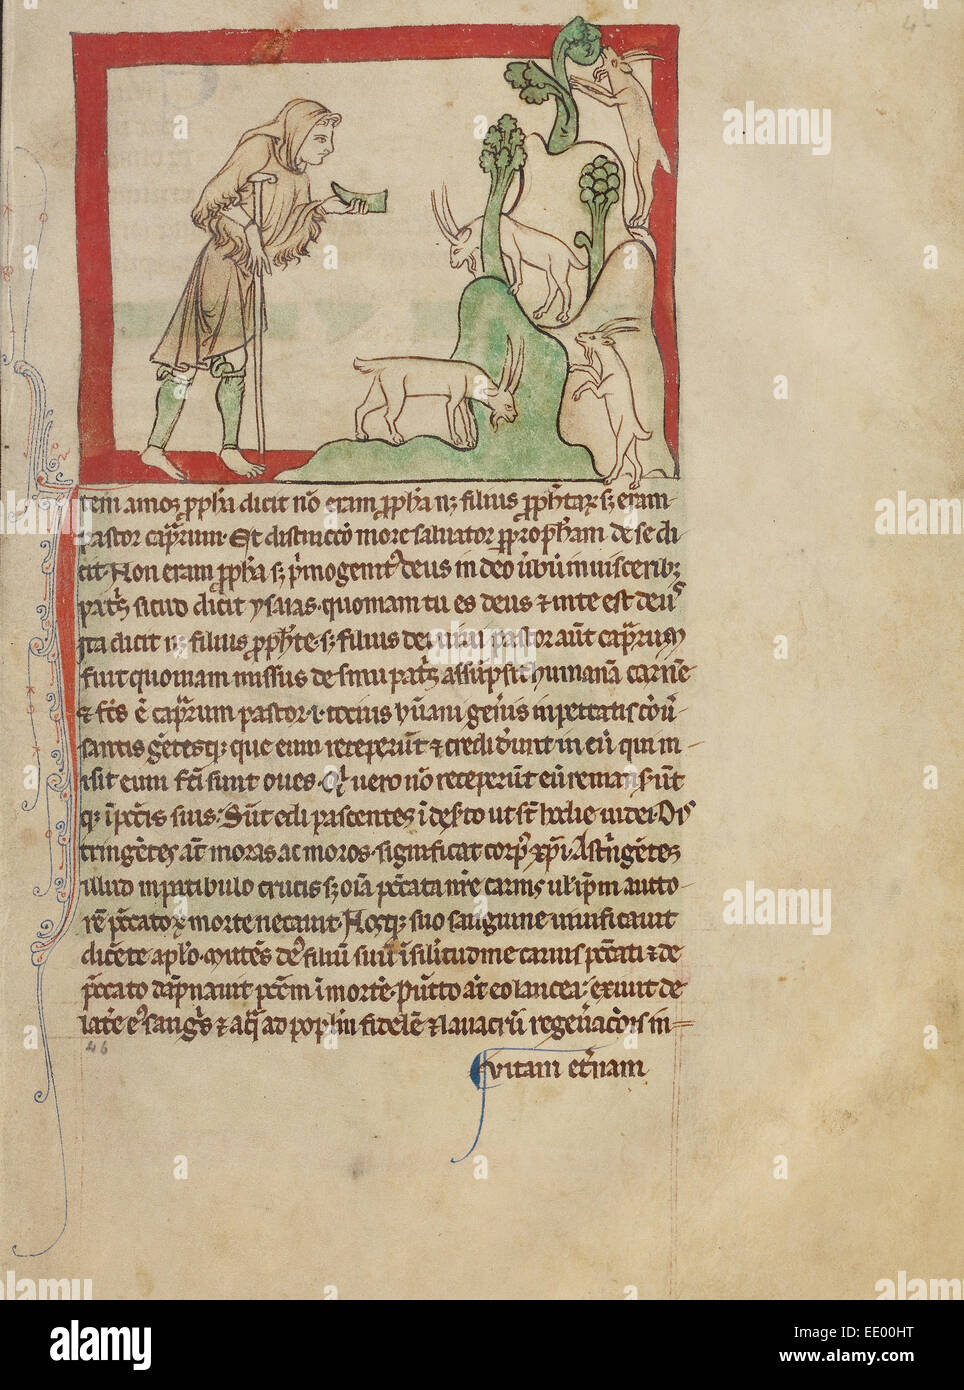 The Prophet Amos; Unknown; England, Europe; about 1250 - 1260; Pen-and-ink drawings tinted with body color Stock Photo